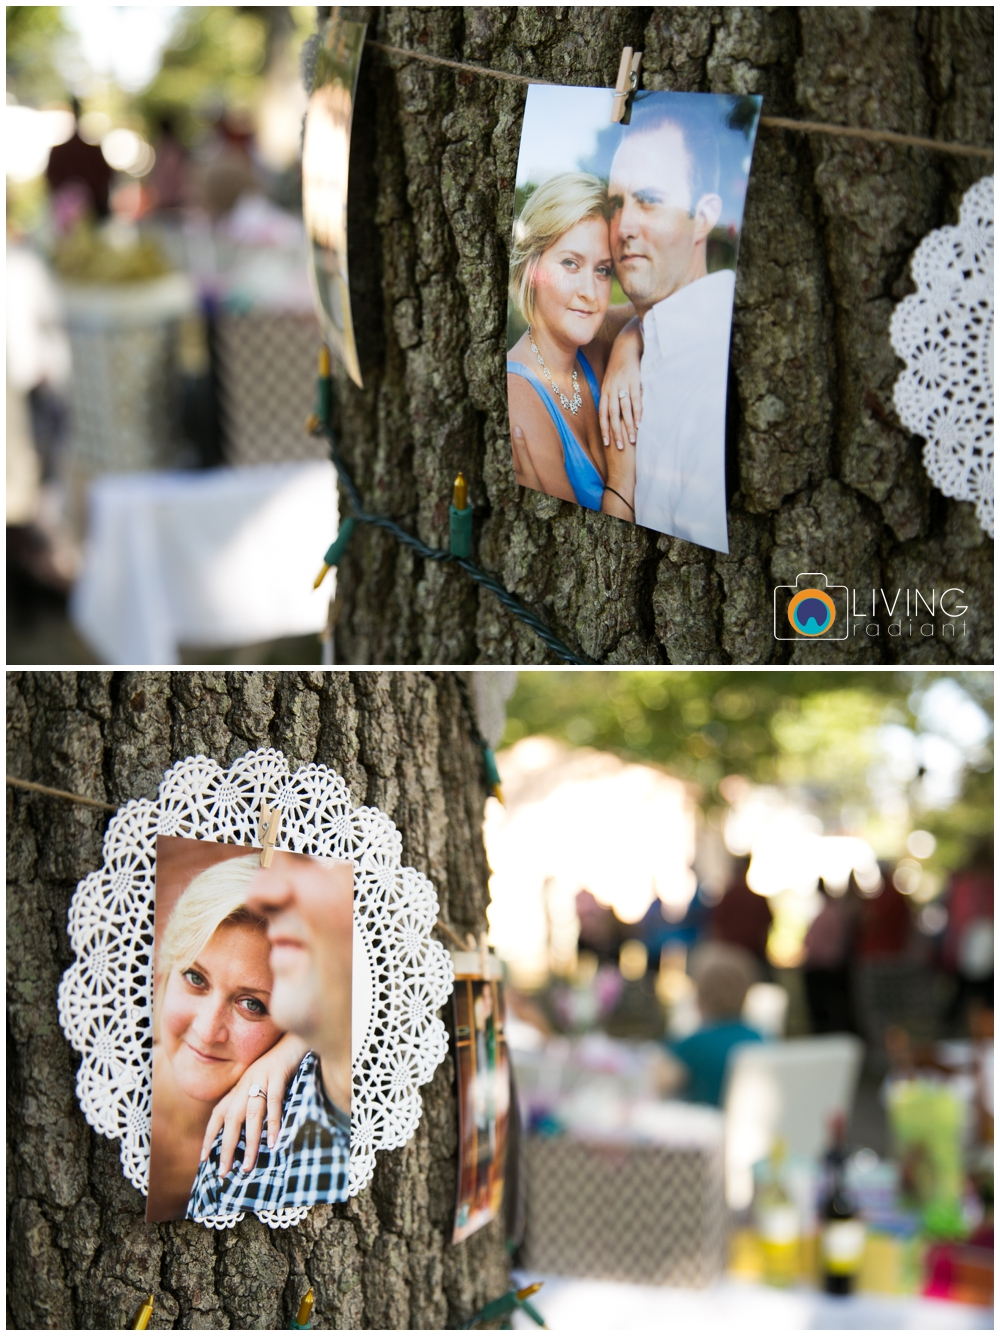 brent-laura-engagement-party-baltimore-living-radiant-photography_0054.jpg